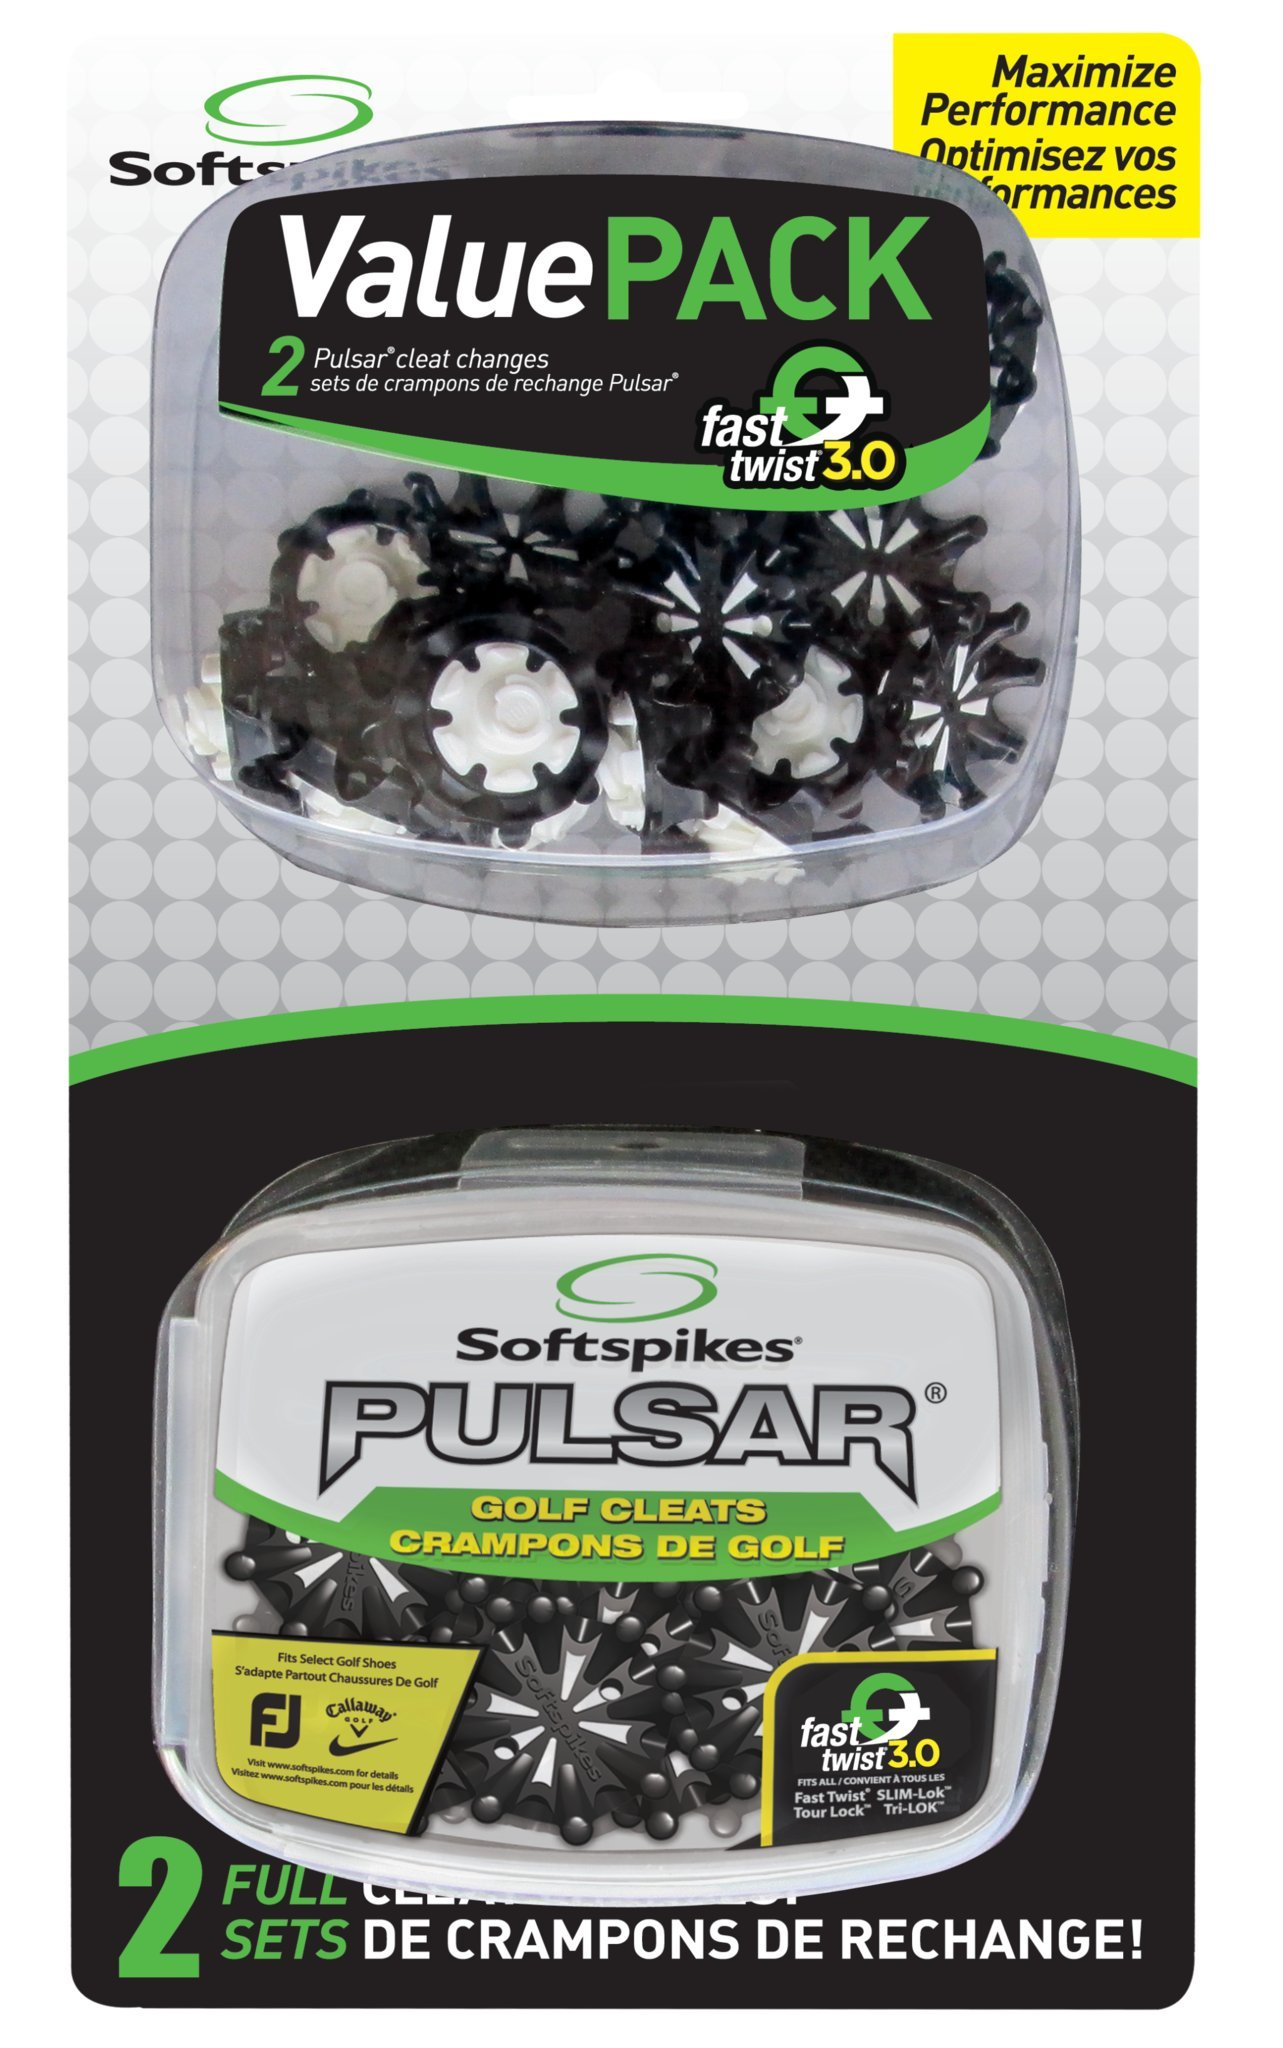 Softspikes Pulsar Golf Cleats Fast Twist 3.0 Value Pack by SOFTSPIKES